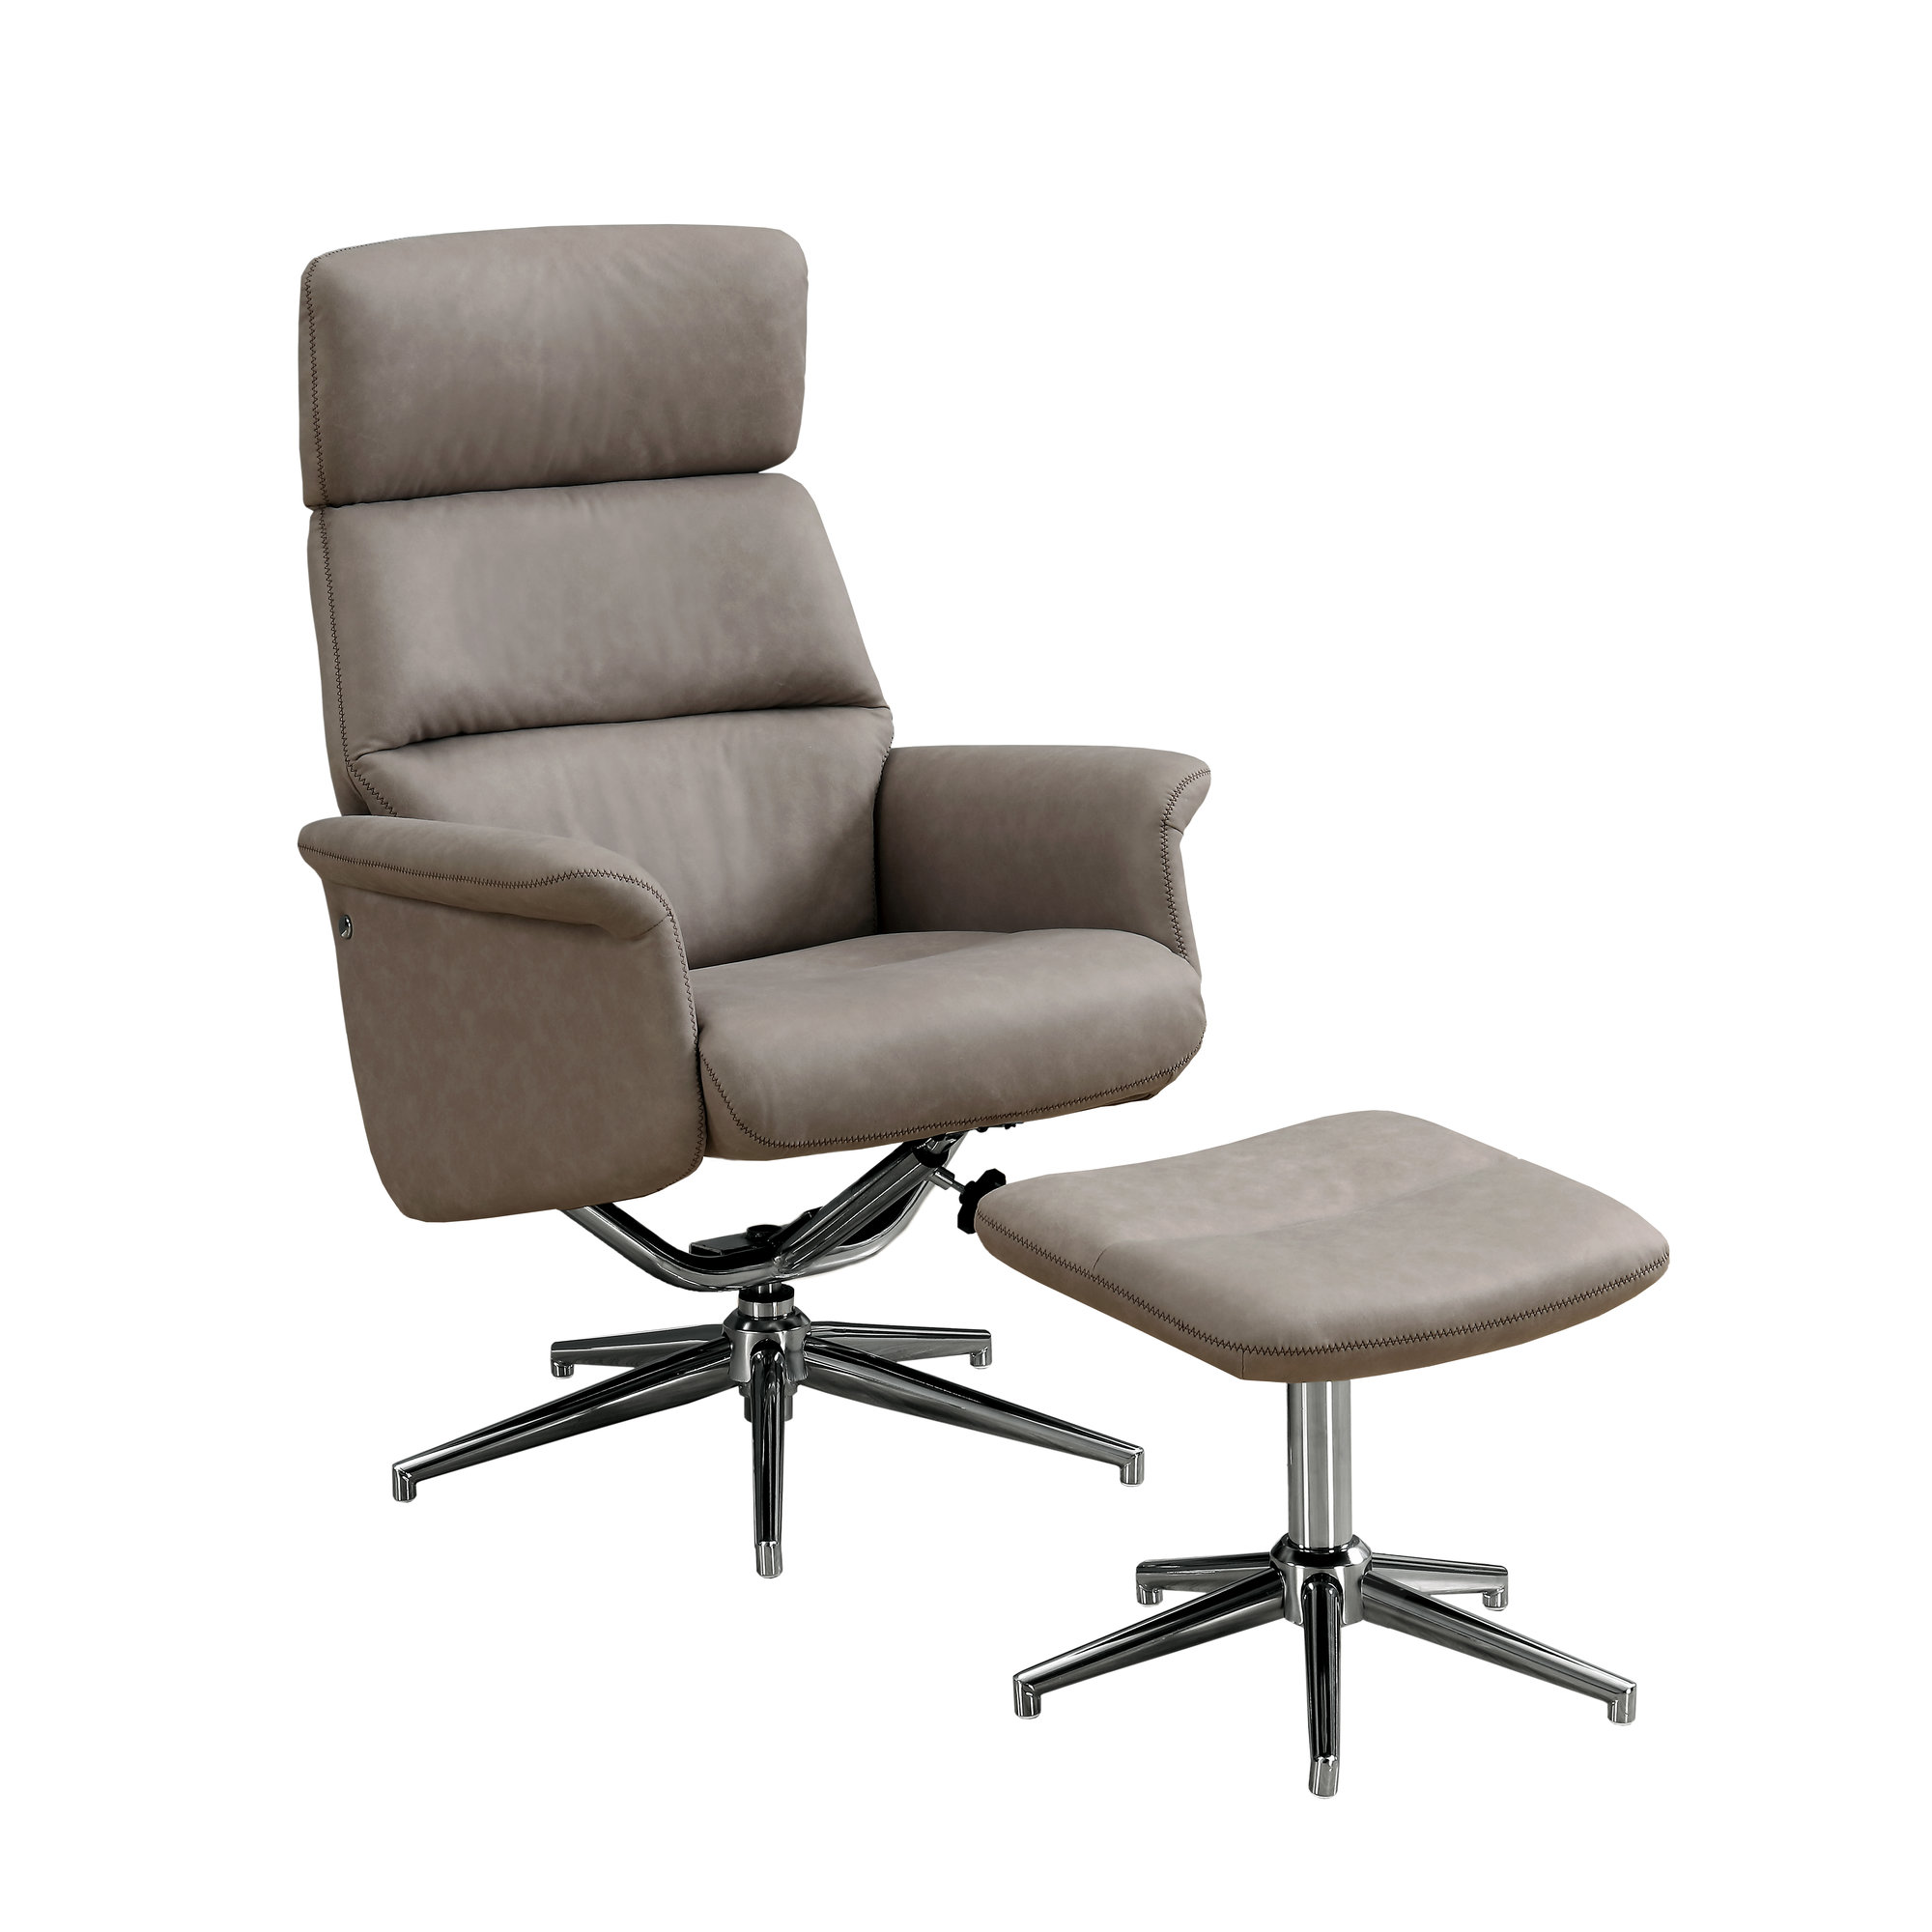 RECLINER - 2PCS SET / TAUPE SWIVEL - ADJUSTABLE HEADREST